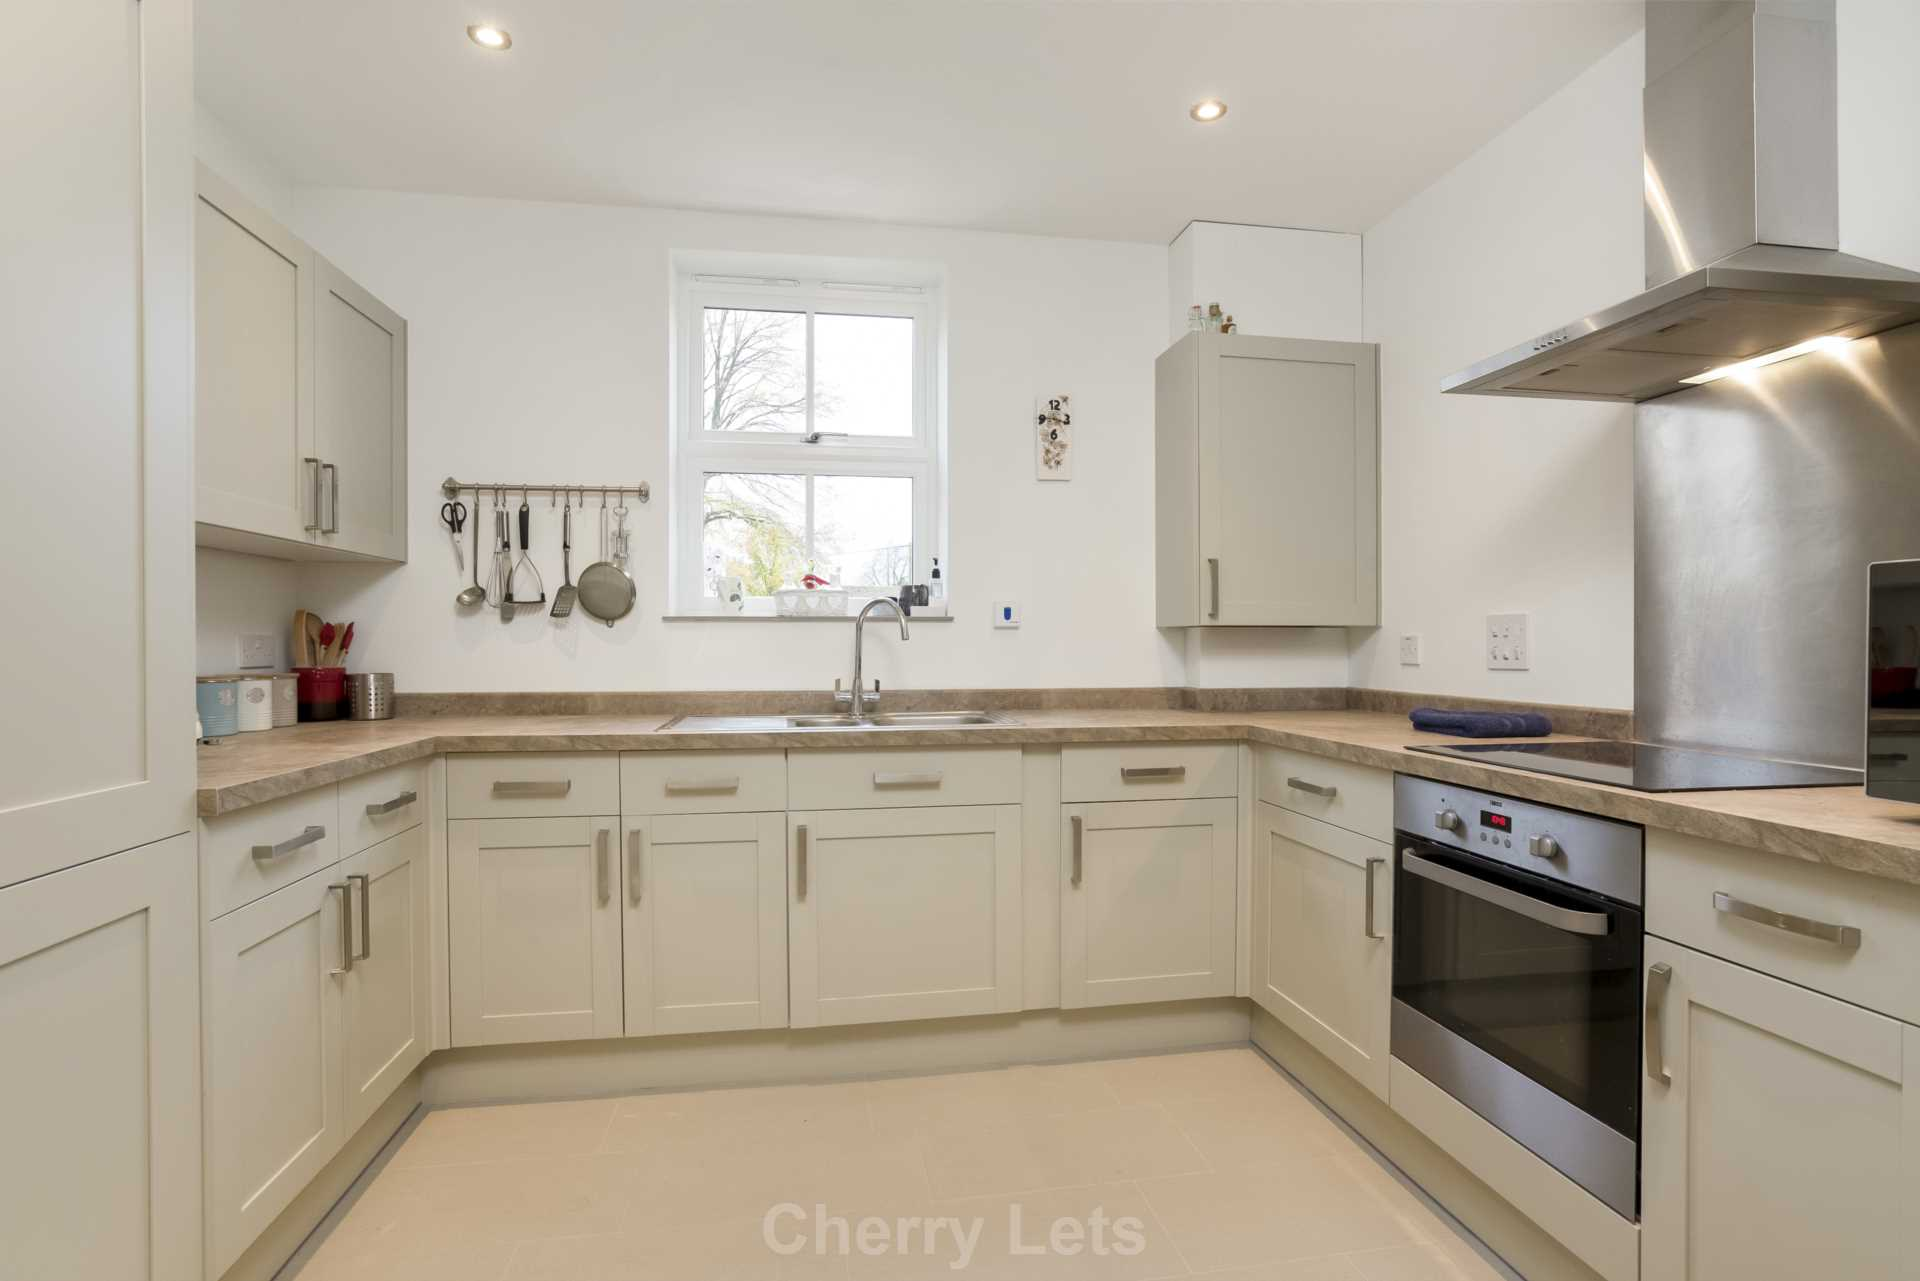 2 bed apartment to rent in Astrop Grange, Kings Sutton, OX17 2